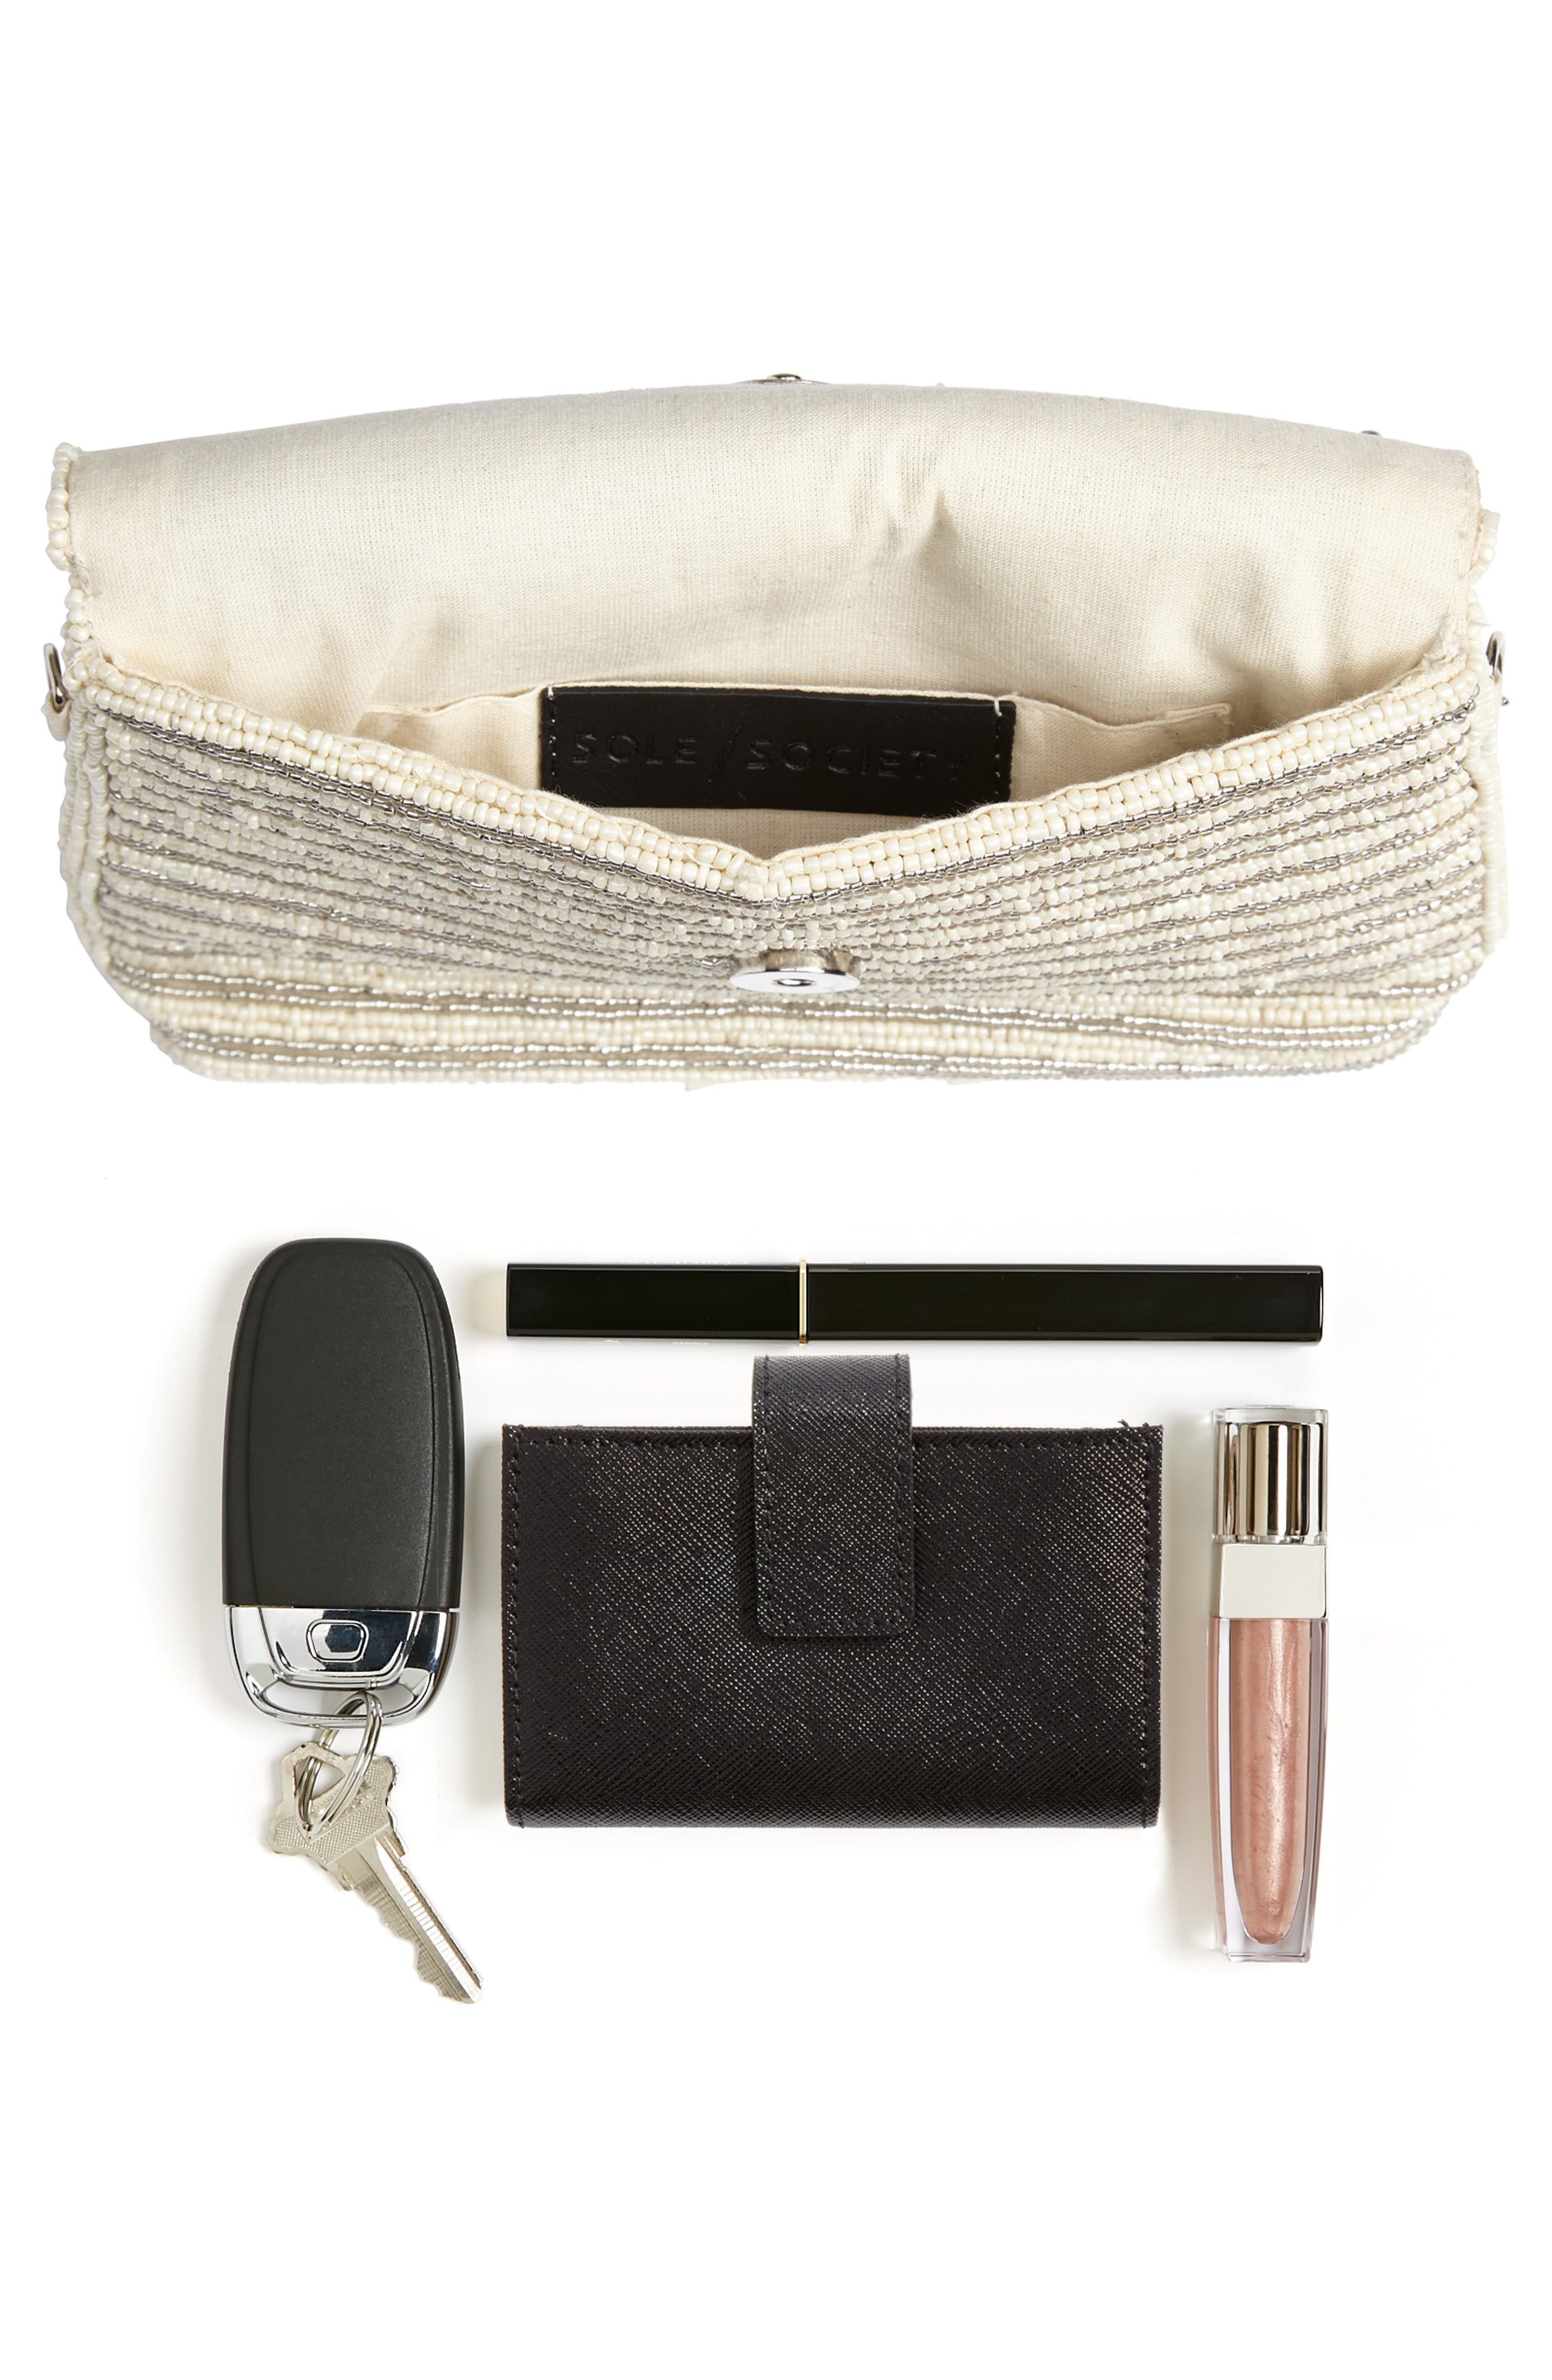 Beaded Clutch,                             Alternate thumbnail 7, color,                             900